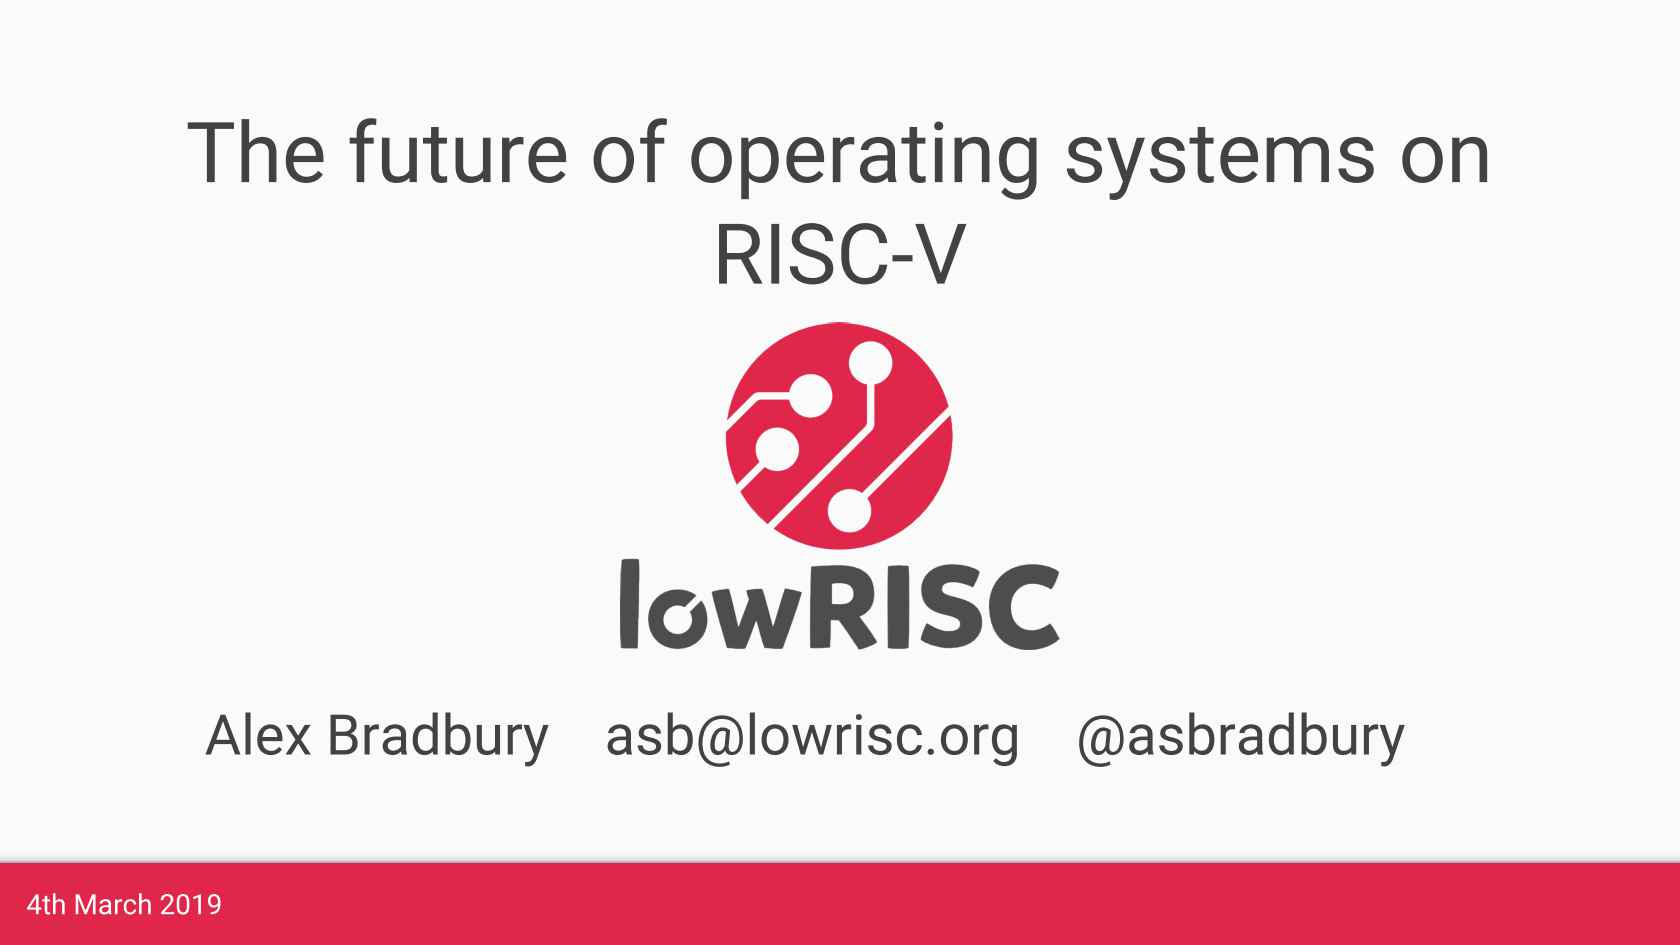 The Future of Operating Systems on RISC-V